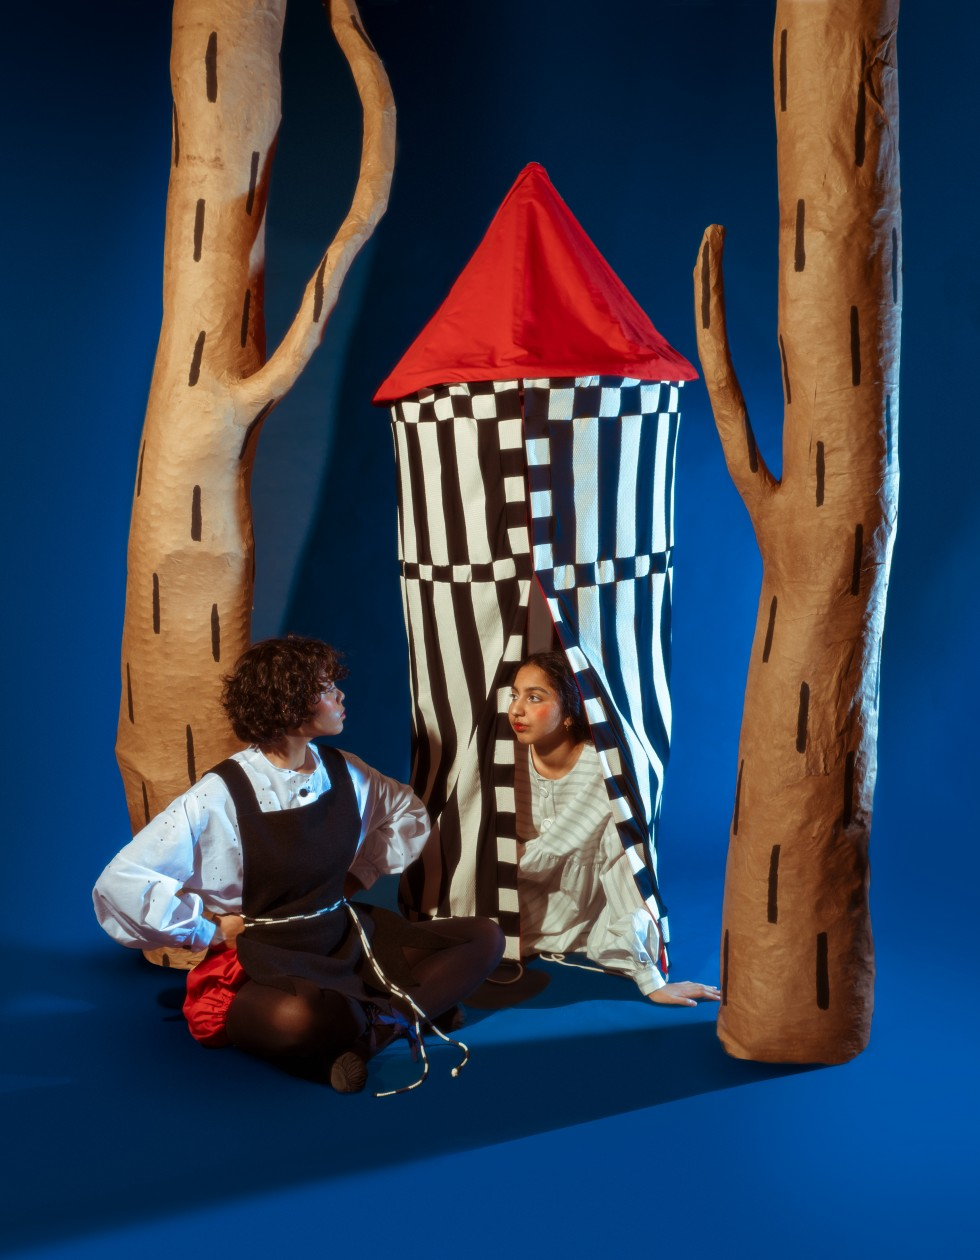 The third image is slightly more zoomed out, now there are two figures. One sits inside the tent wearing a white dress with blue stripes. The model's left arm and face are peeking out of the tent facing the other model. The second model sits in front of t